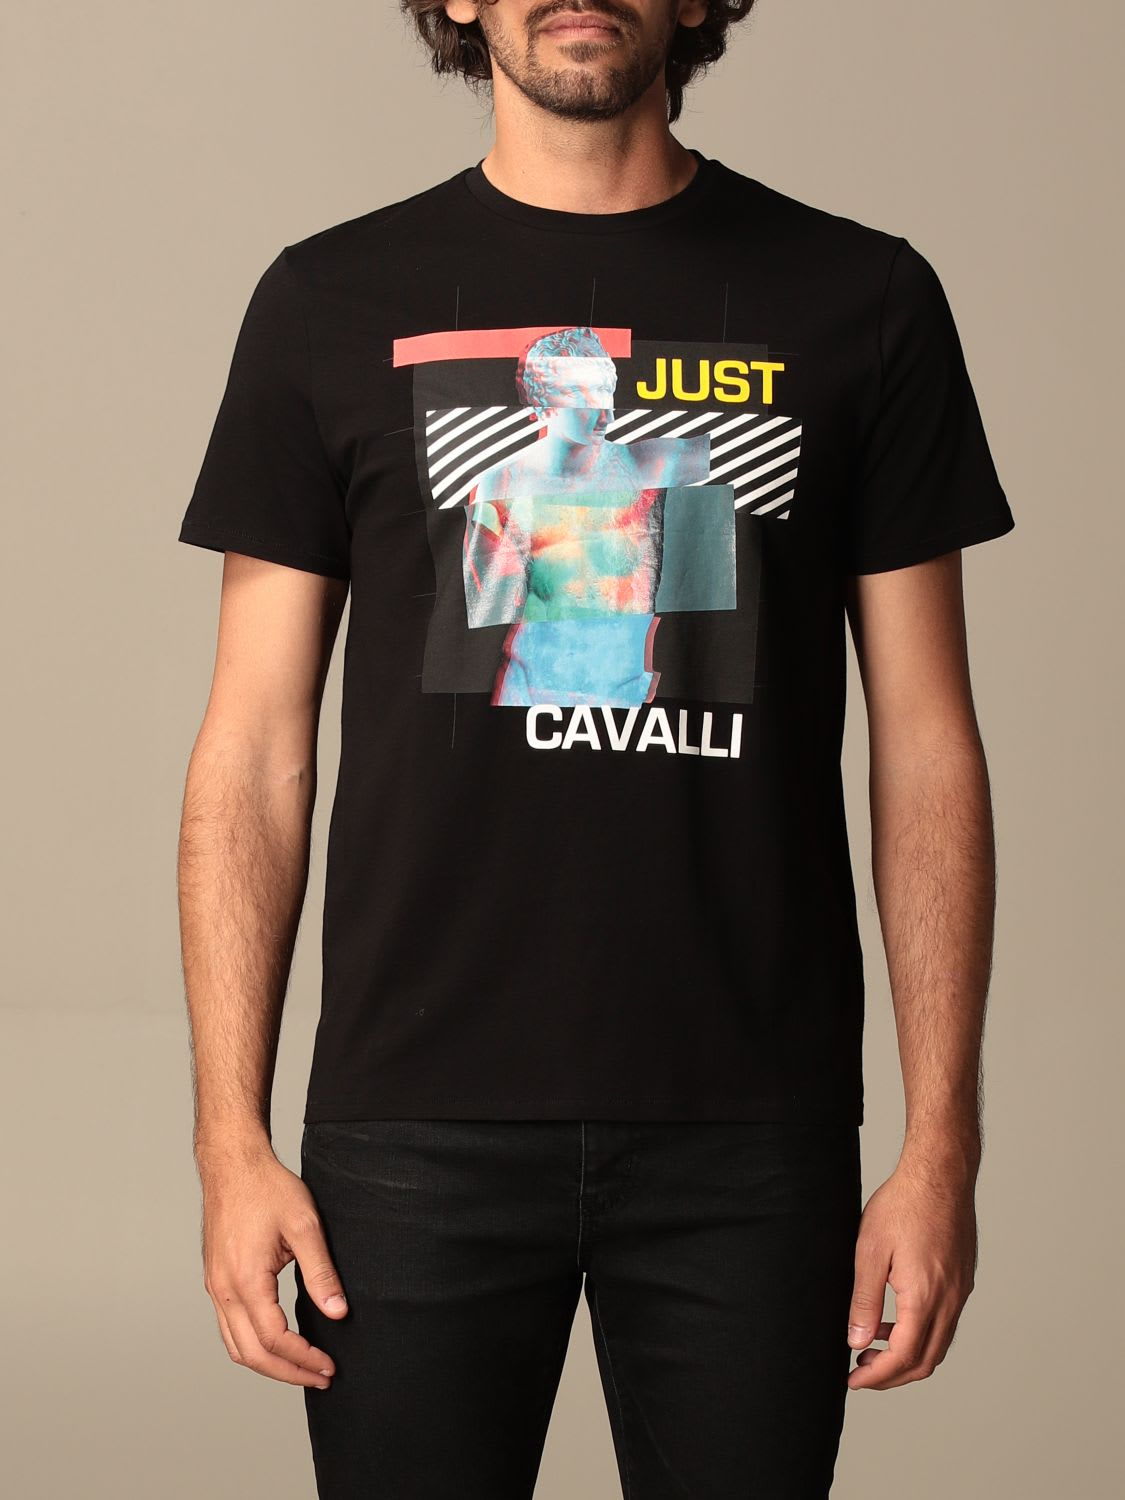 Just Cavalli Clothing T-SHIRT WITH TIGER PRINT